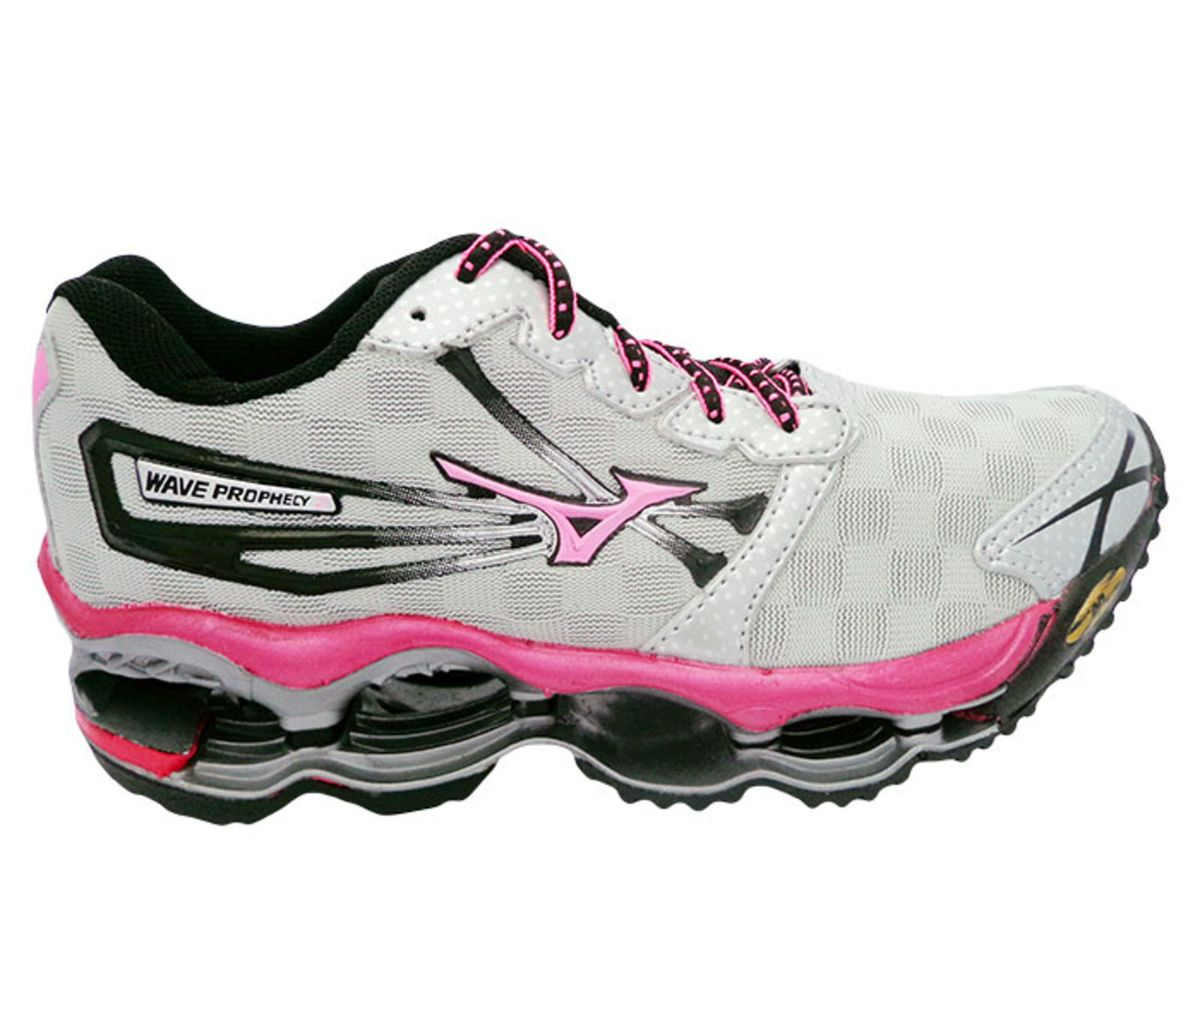 best cheap 93a38 e7d0b Tênis Feminino Mizuno Wave Prophecy 2 Original